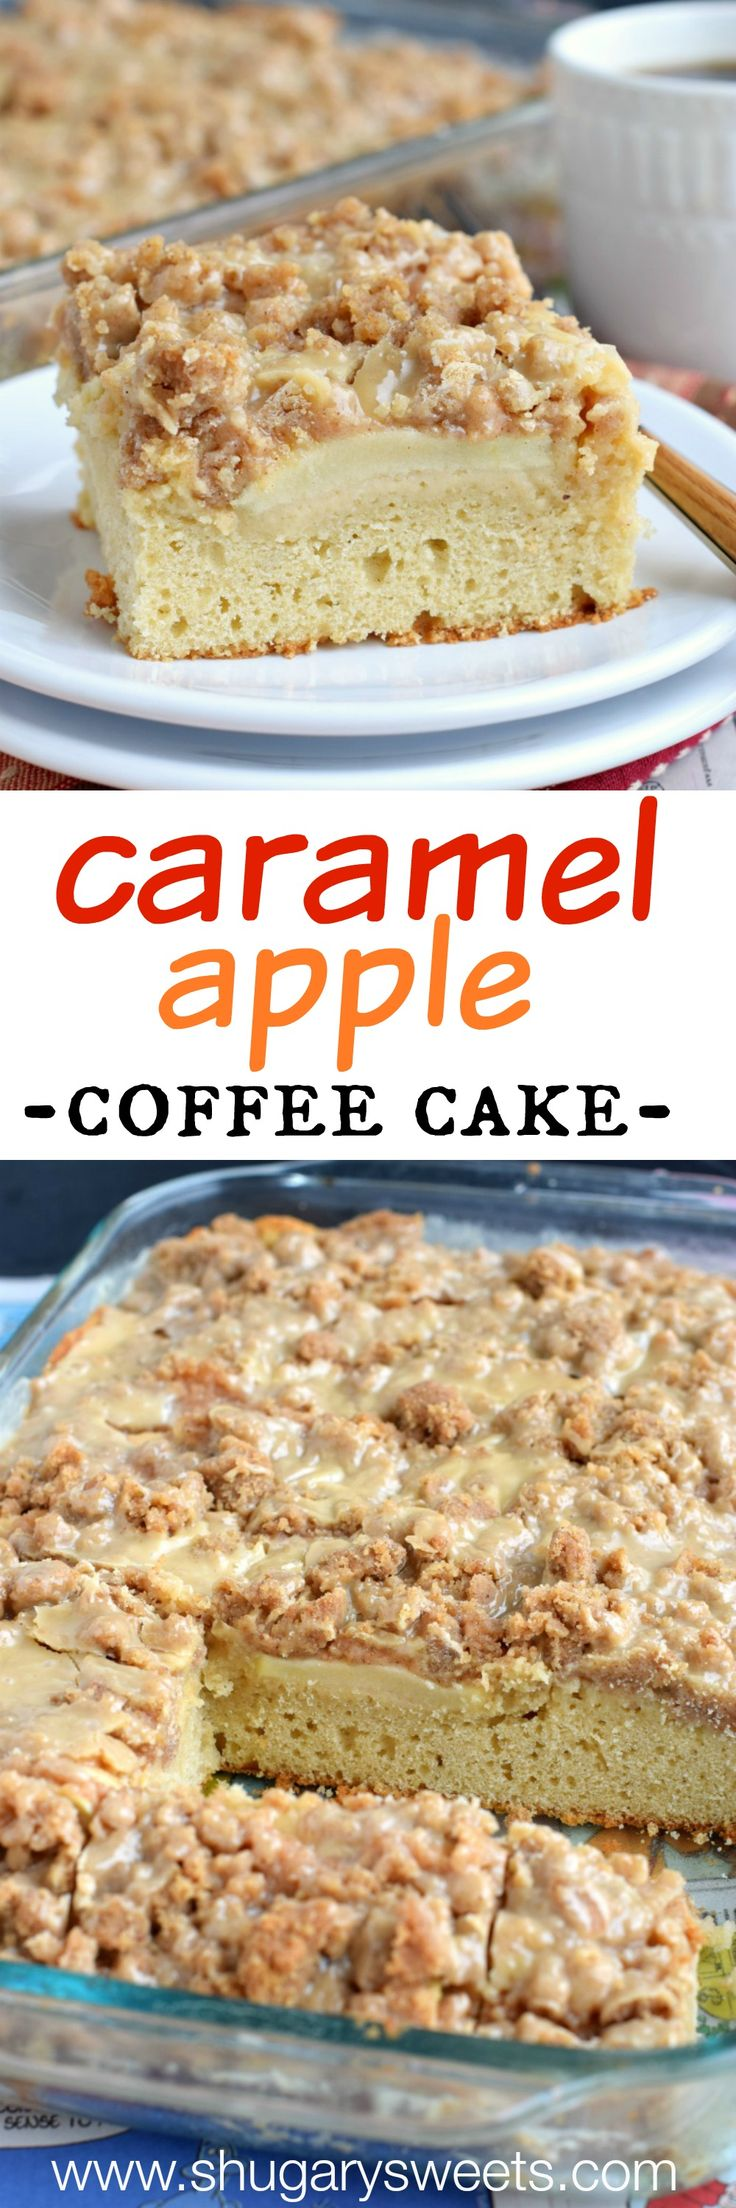 This Apple Coffee cake recipe is perfect for a weekday breakfast and a cup of hot coffee! Also makes a nice addition to your brunch menu!